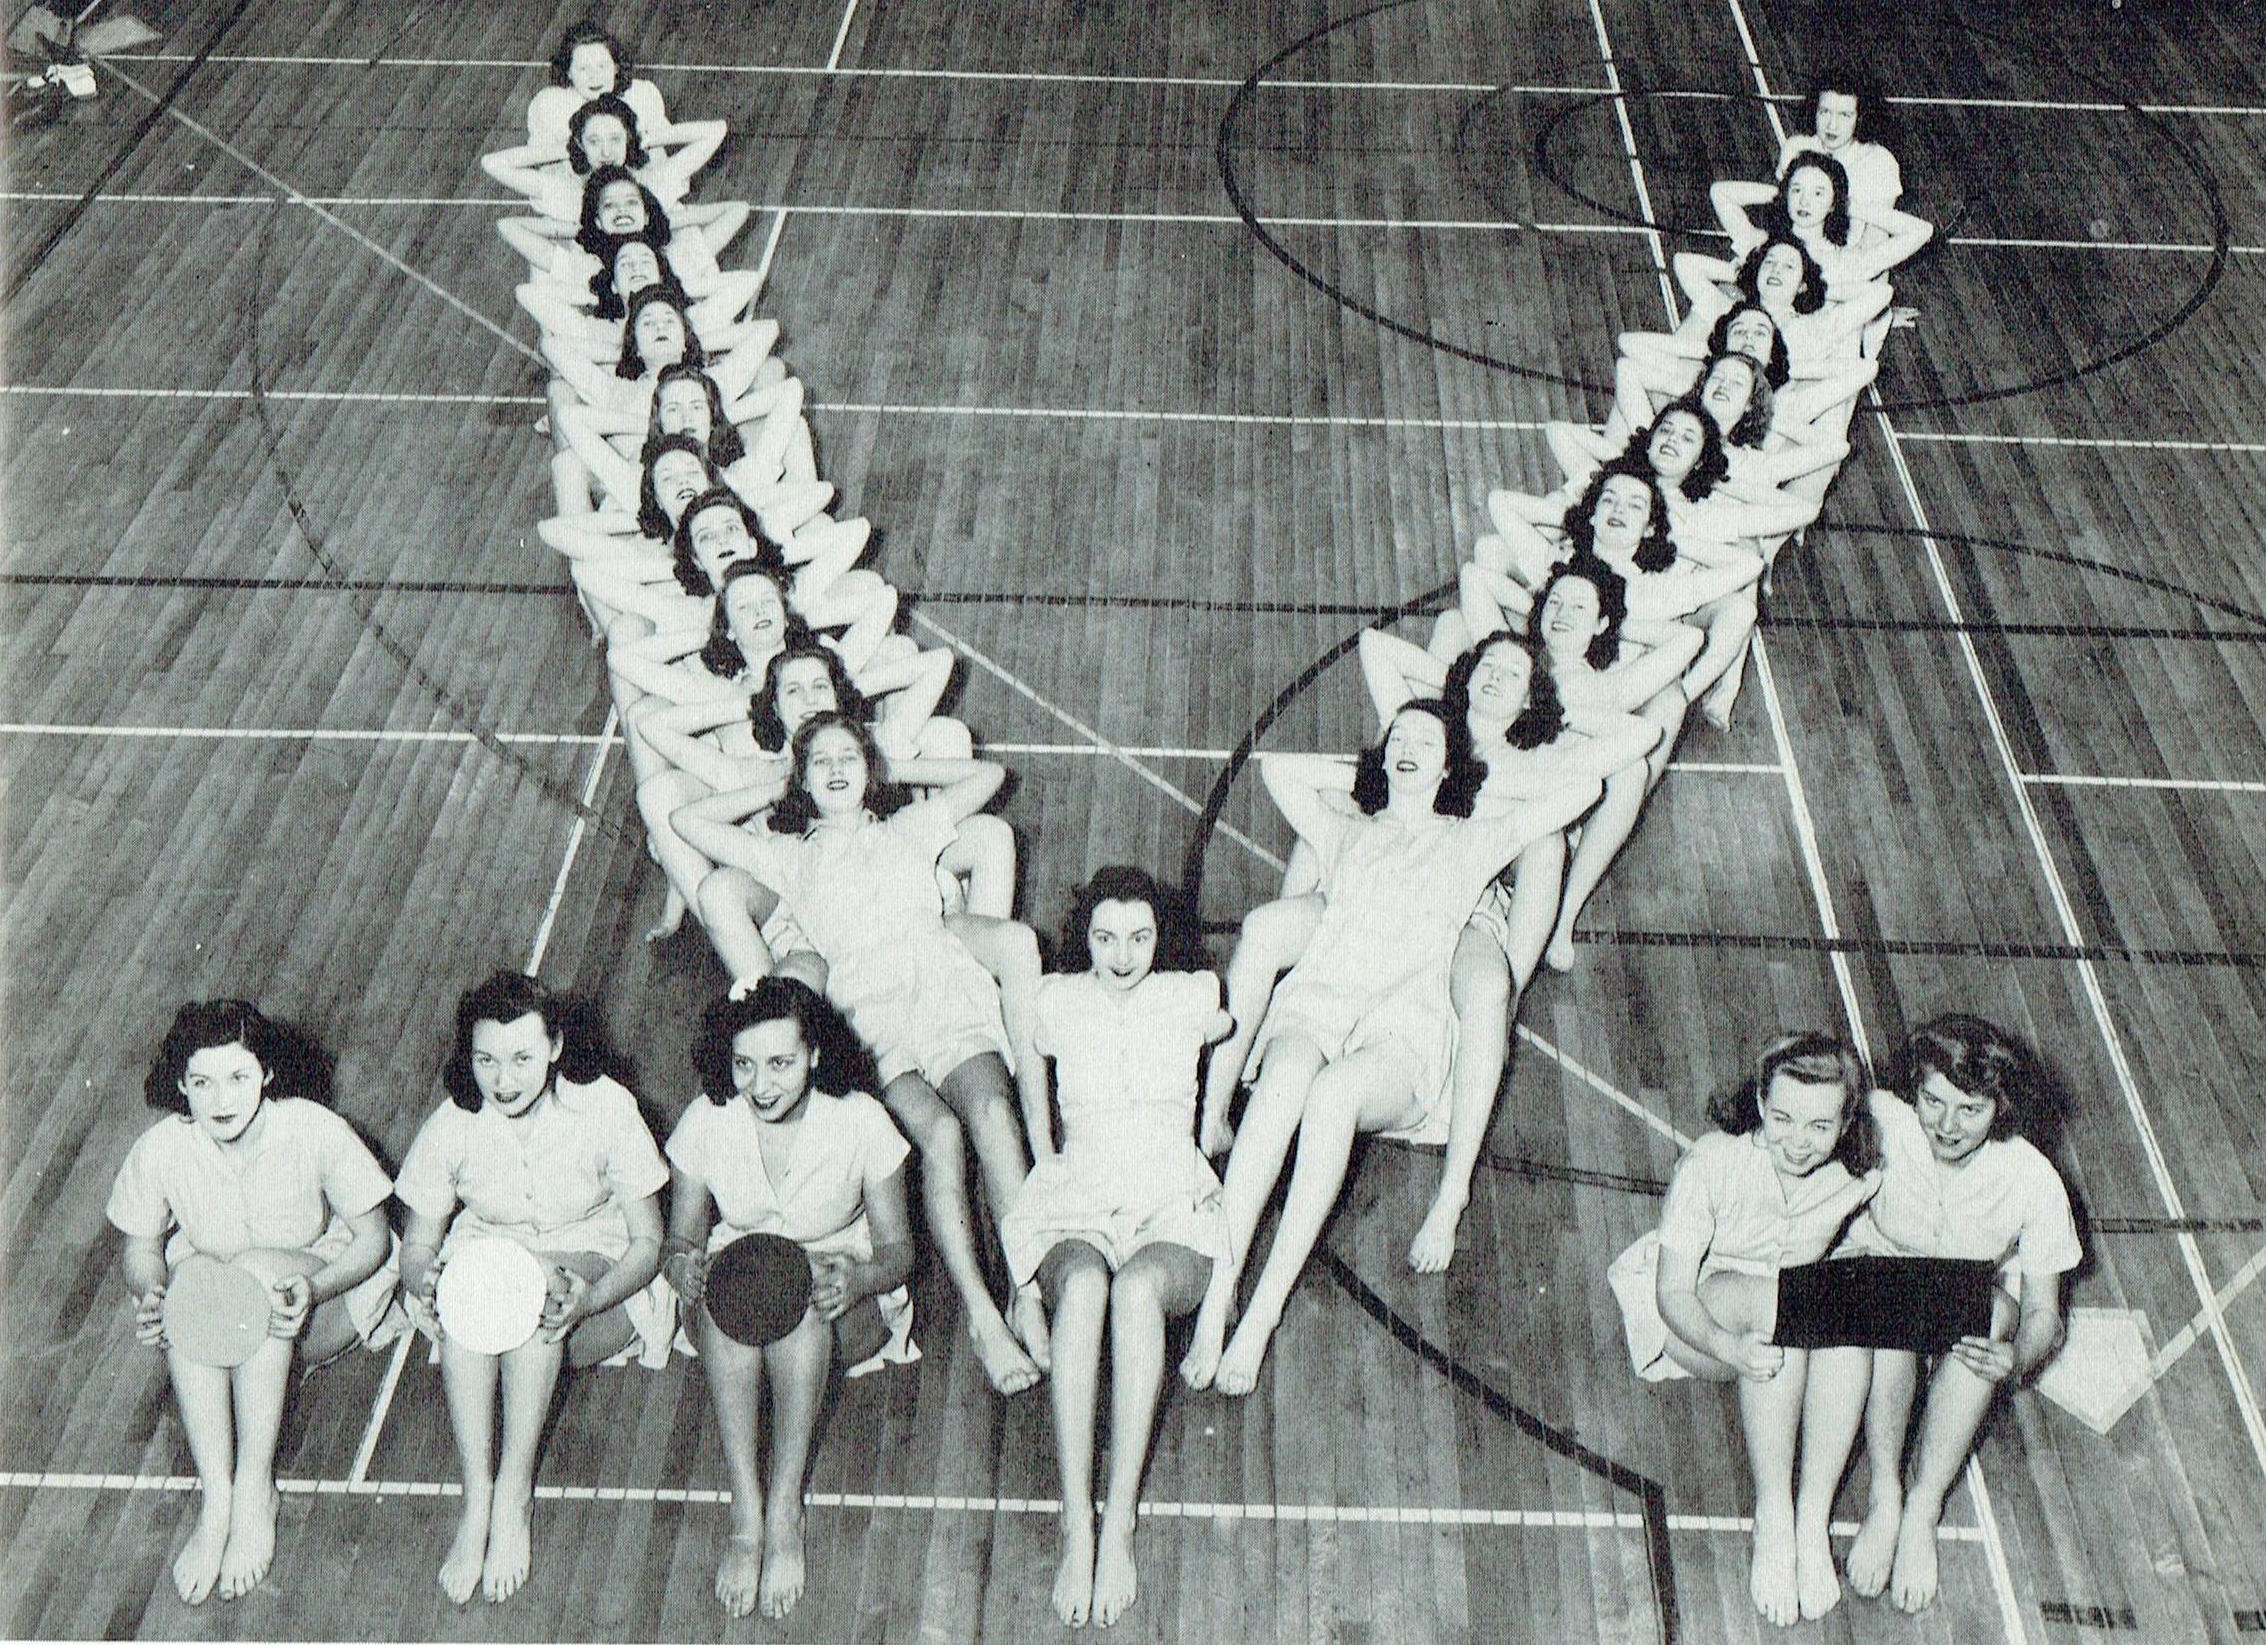 Photo of Dance Study Club from the 1942 Yearbook